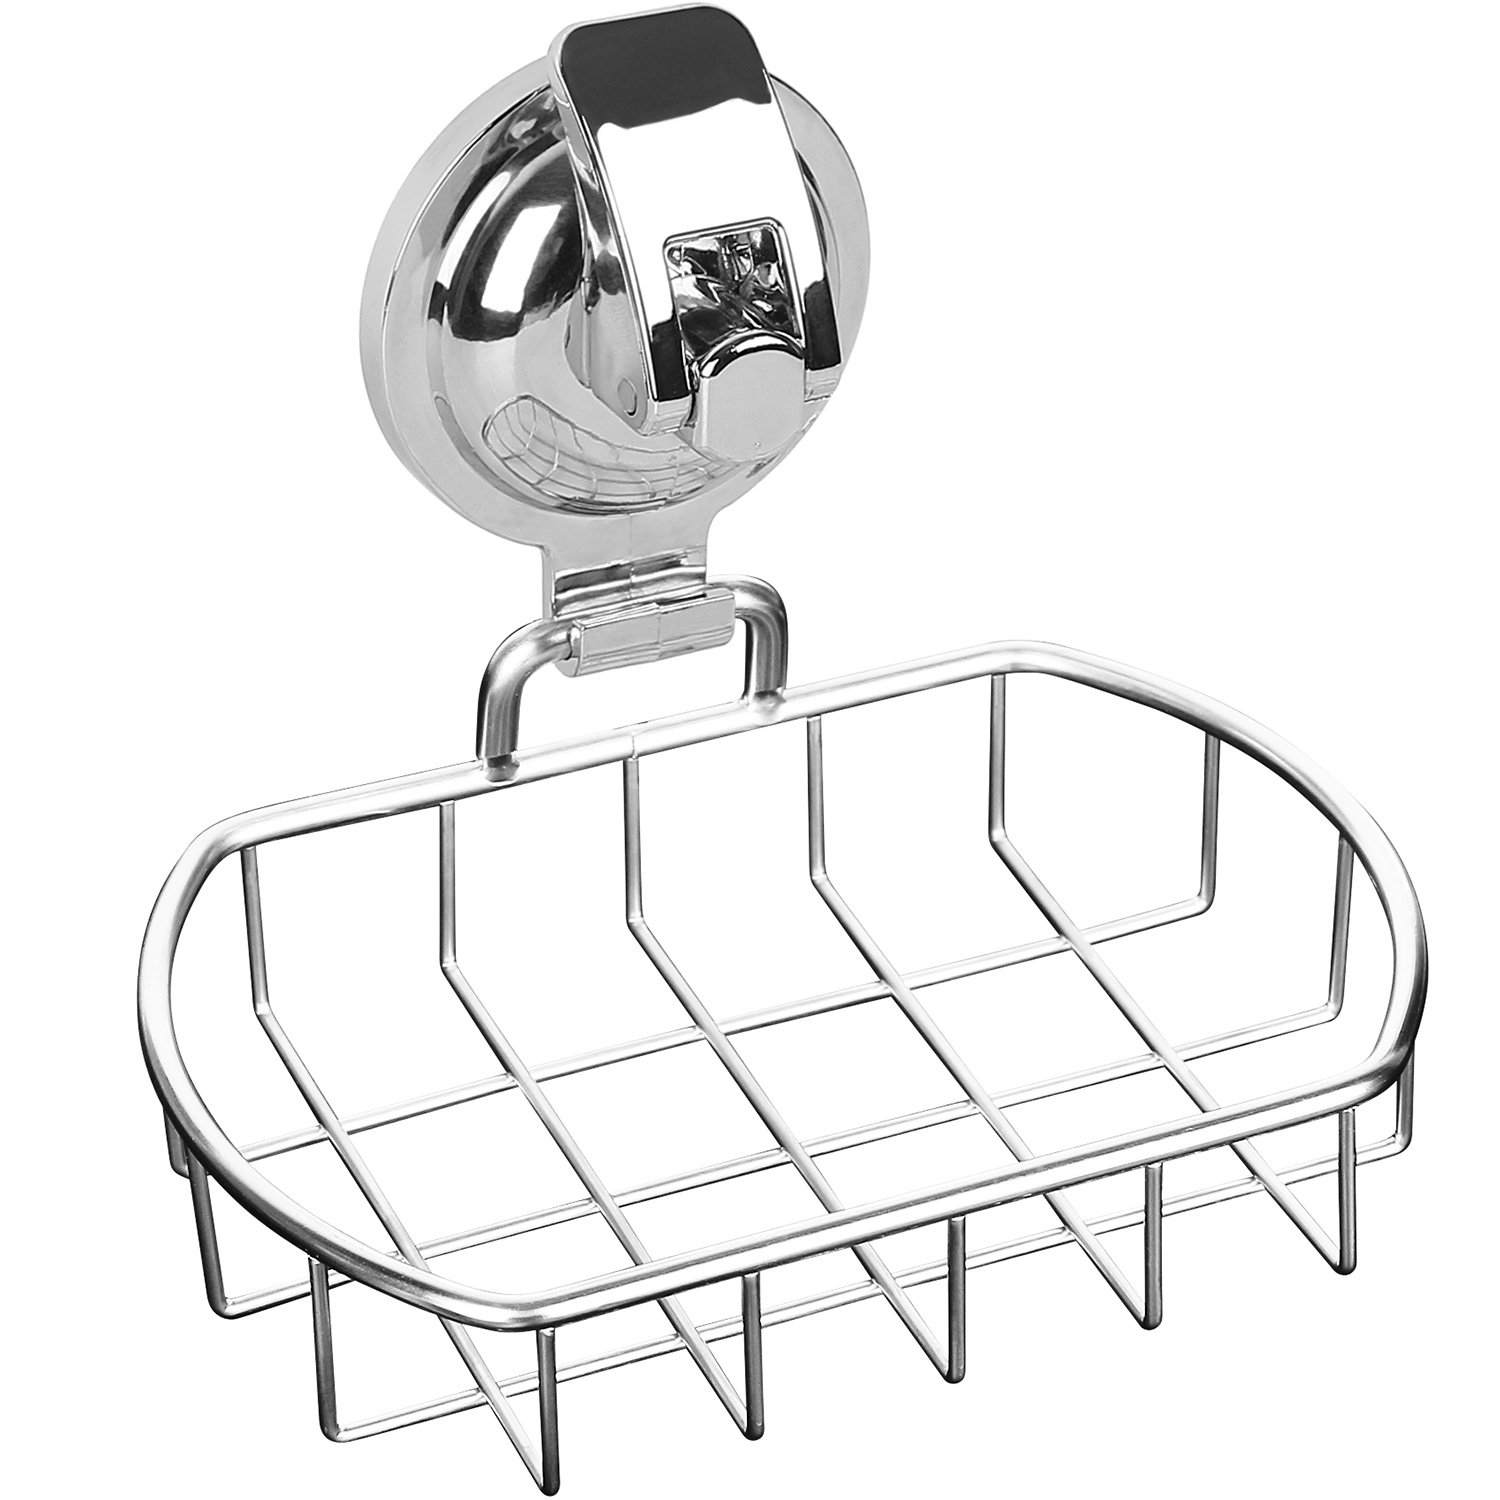 Anwenk Soap Dish Stainless Steel Vacuum Suction Cup Soap Dish Powerful Soap Saver Dish Soap Tray Soap Holder for Shower Bathroom & Kitchen